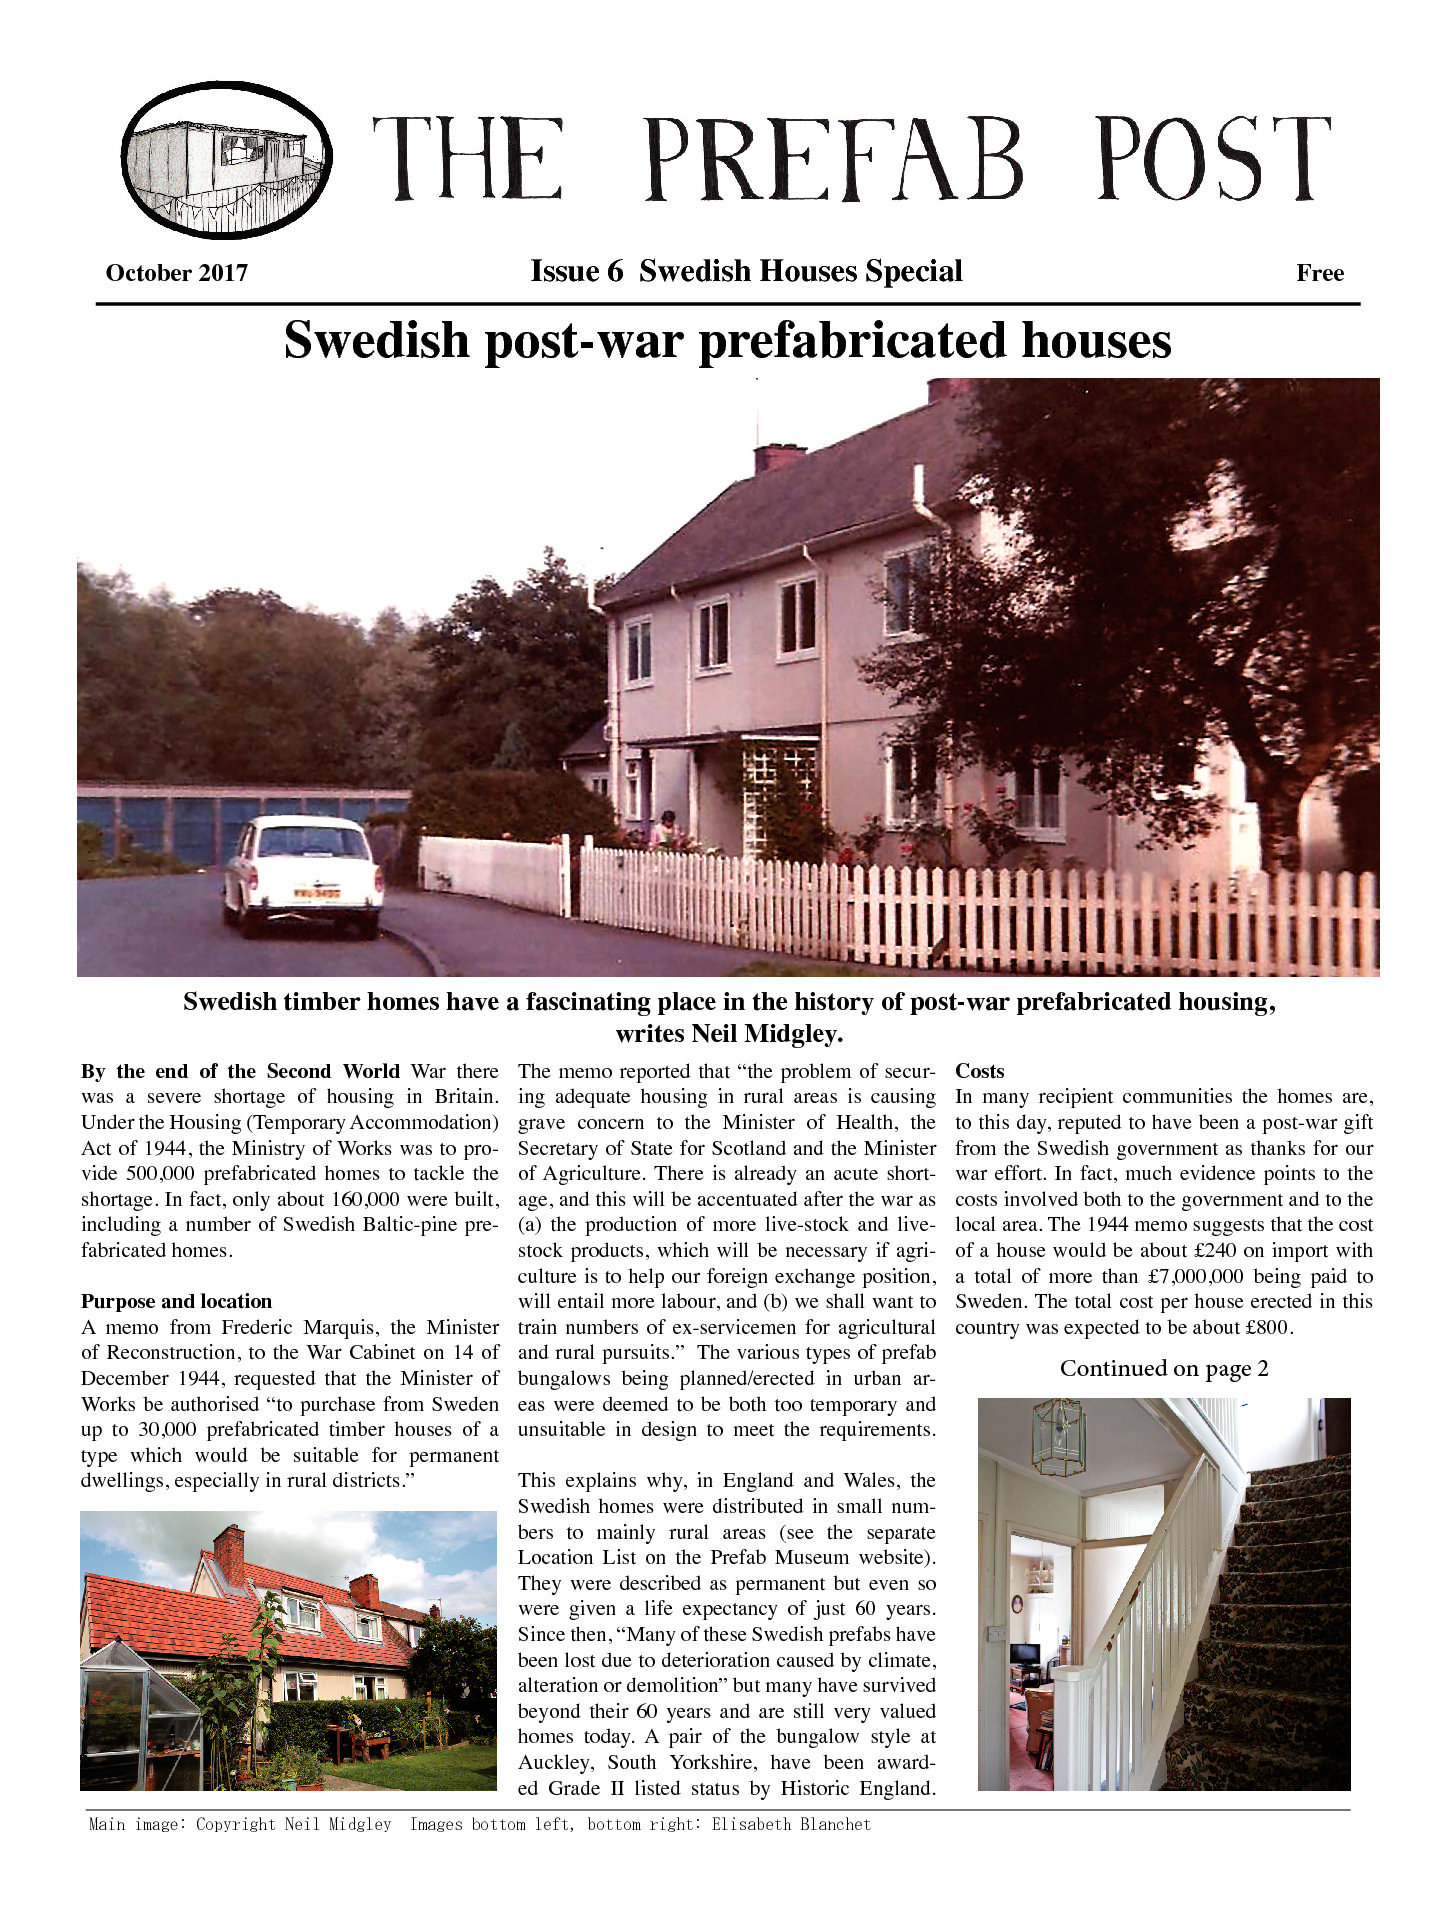 Moving Prefab: Prefab Post Issue 6